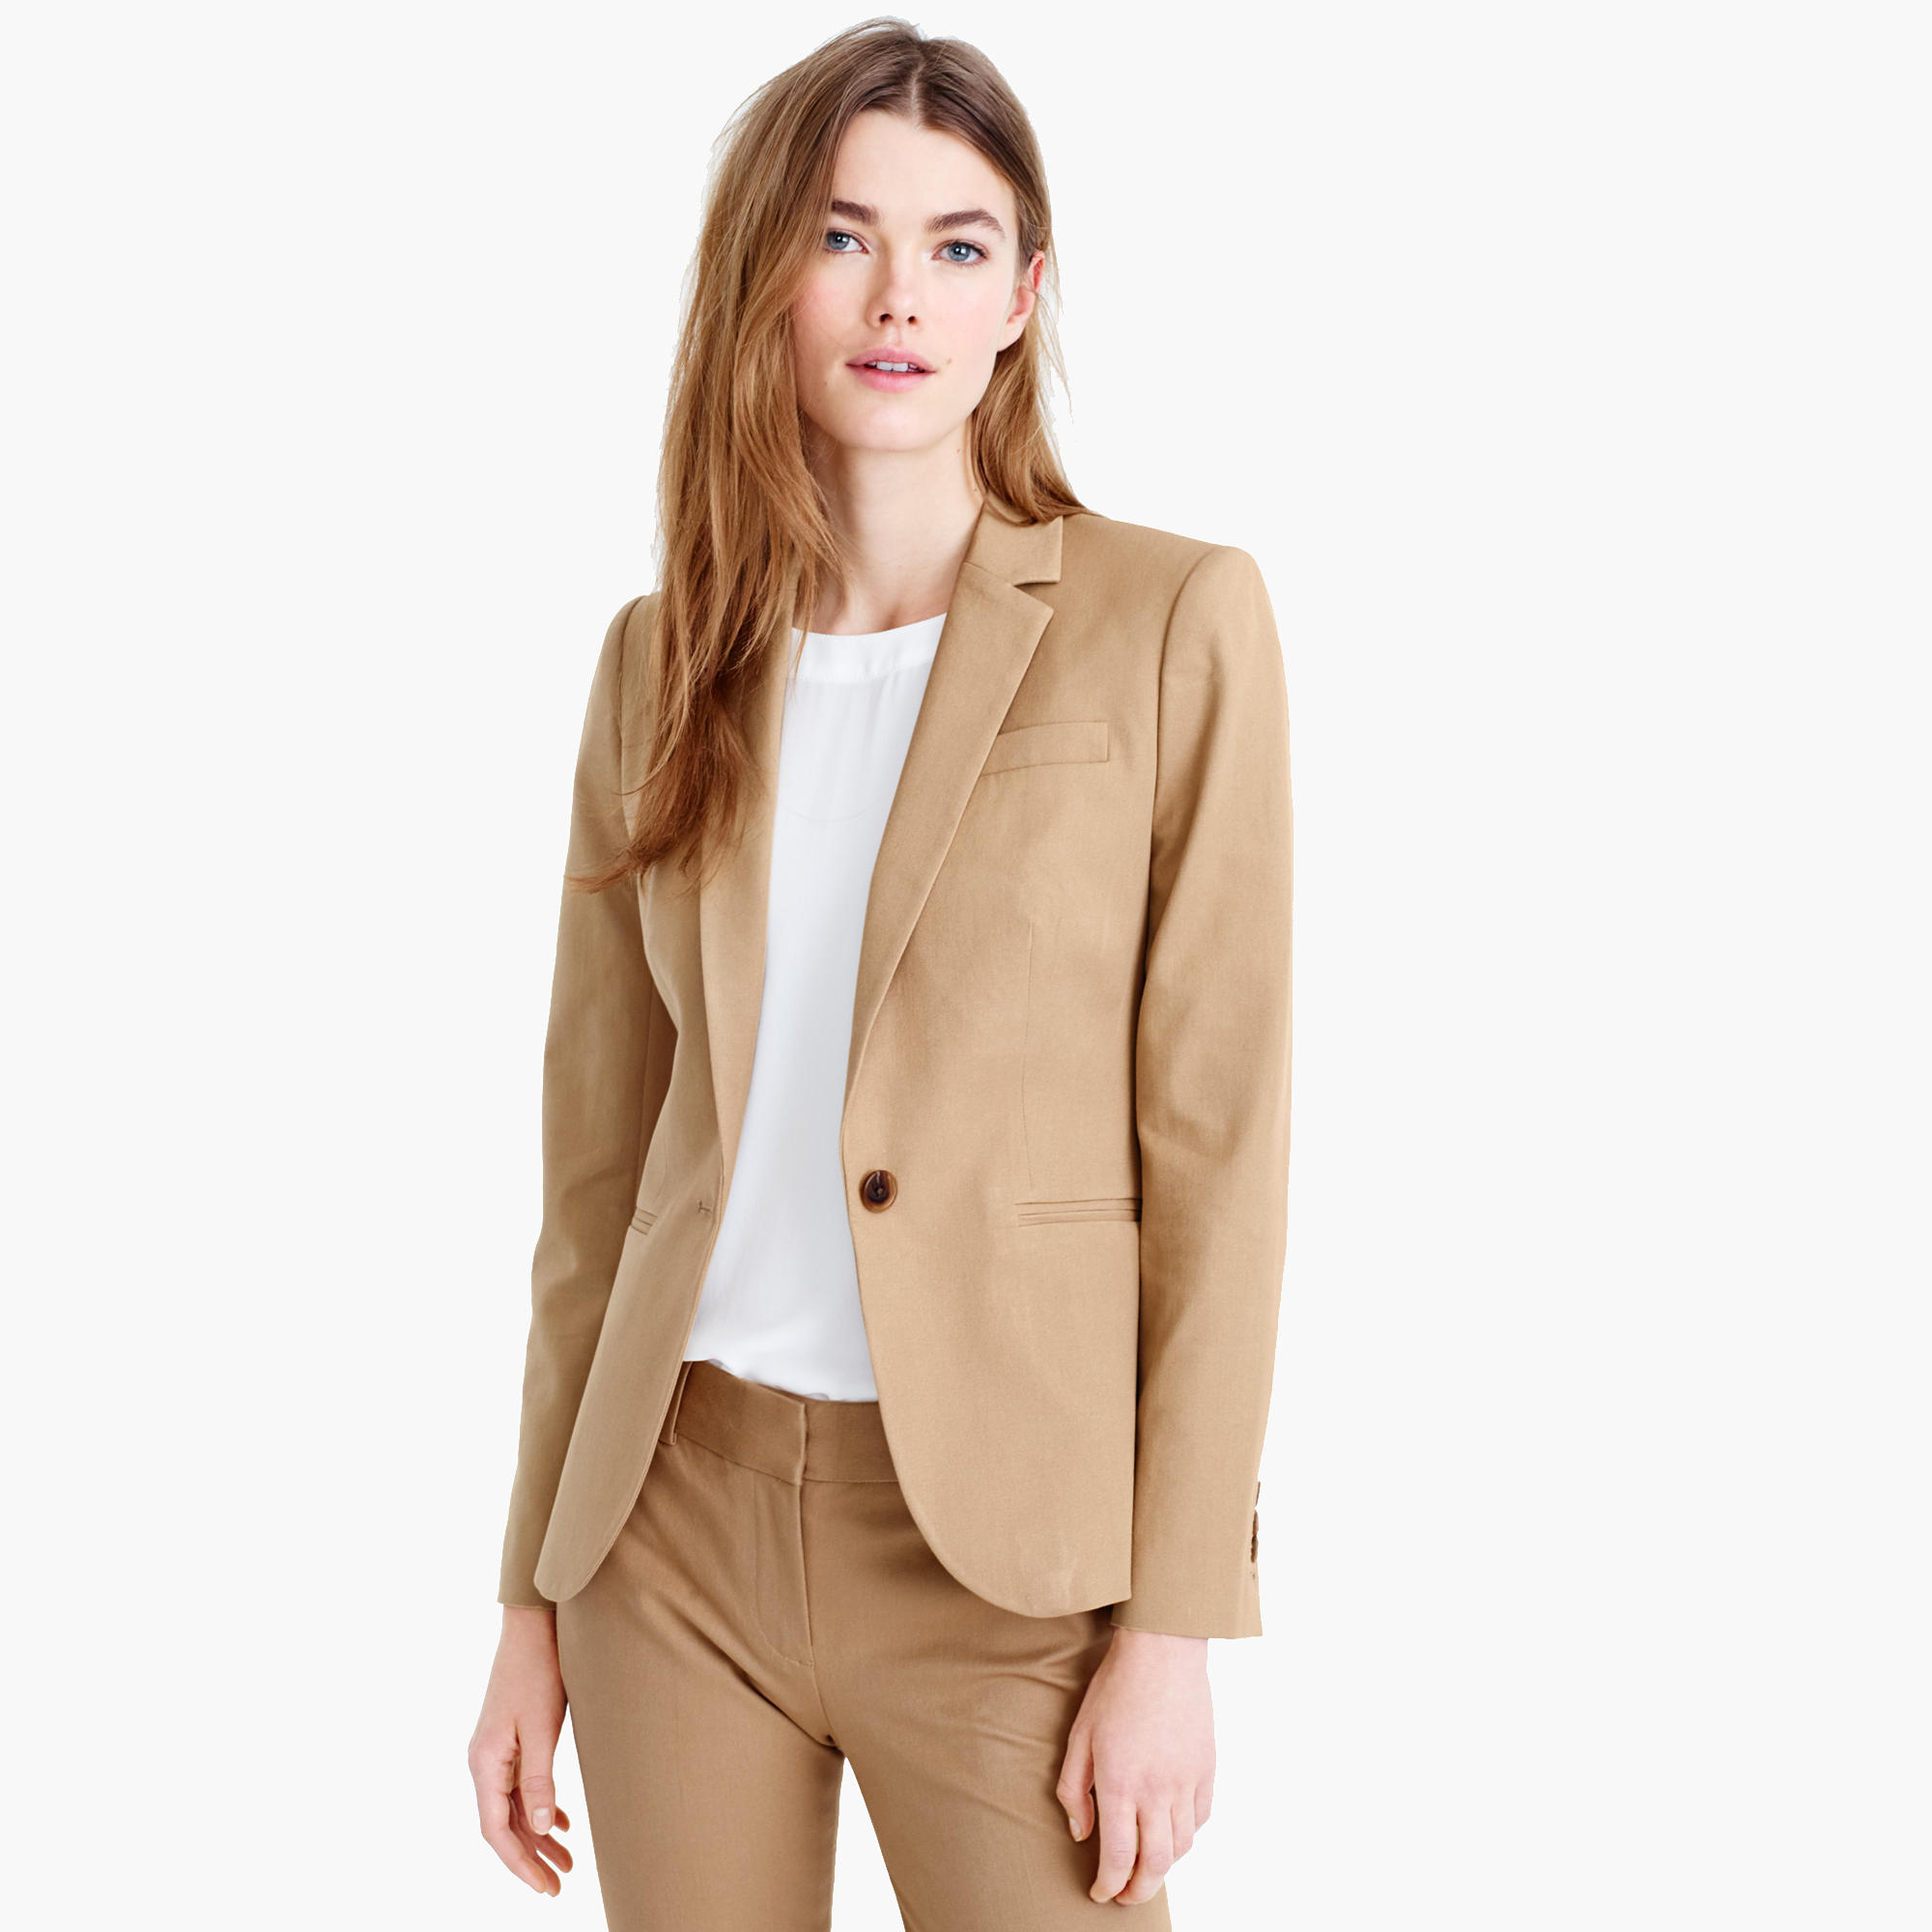 Campbell Blazer In Bi-Stretch Cotton : Women's Blazers | J.Crew